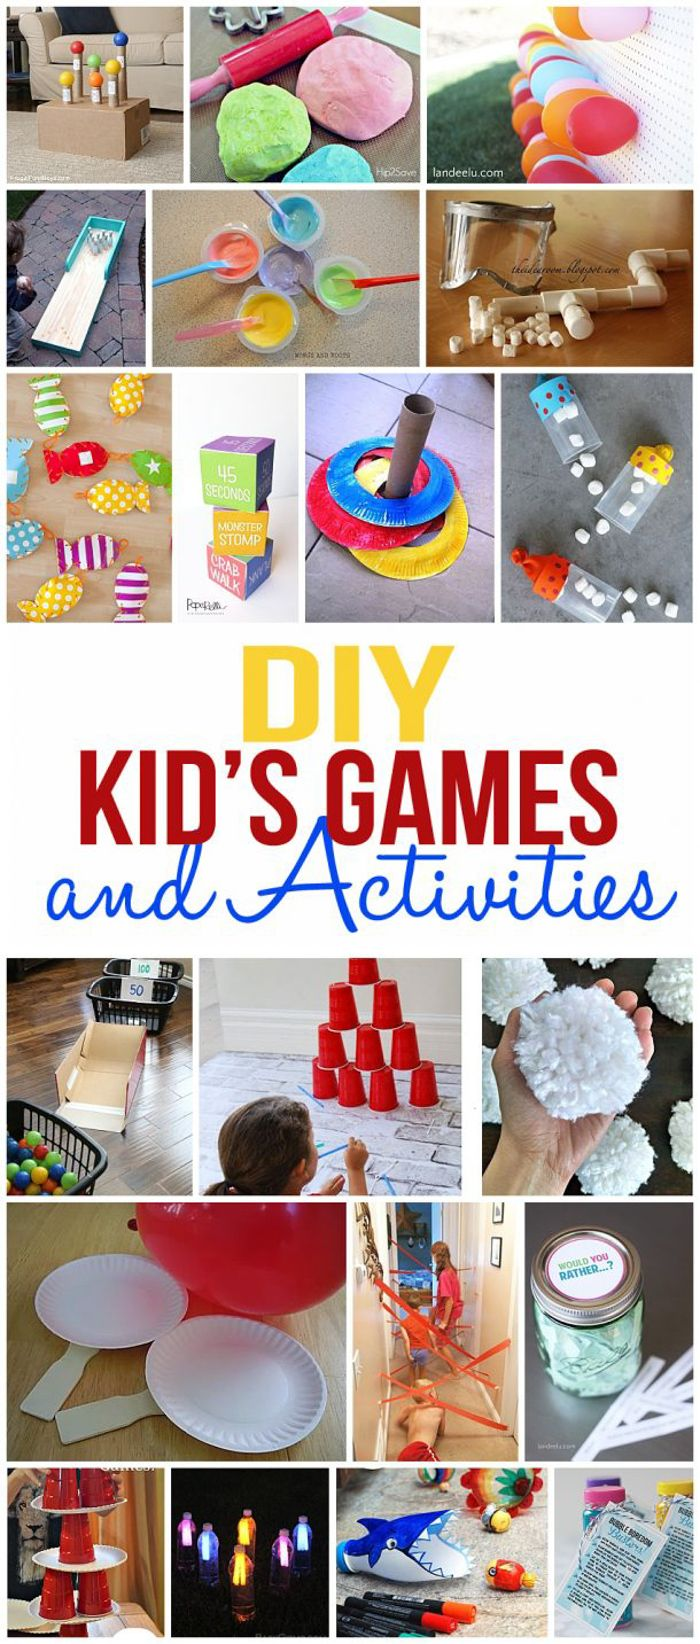 DIY Kids Games and Activities for Indoors or Outdoors - landeelu.com